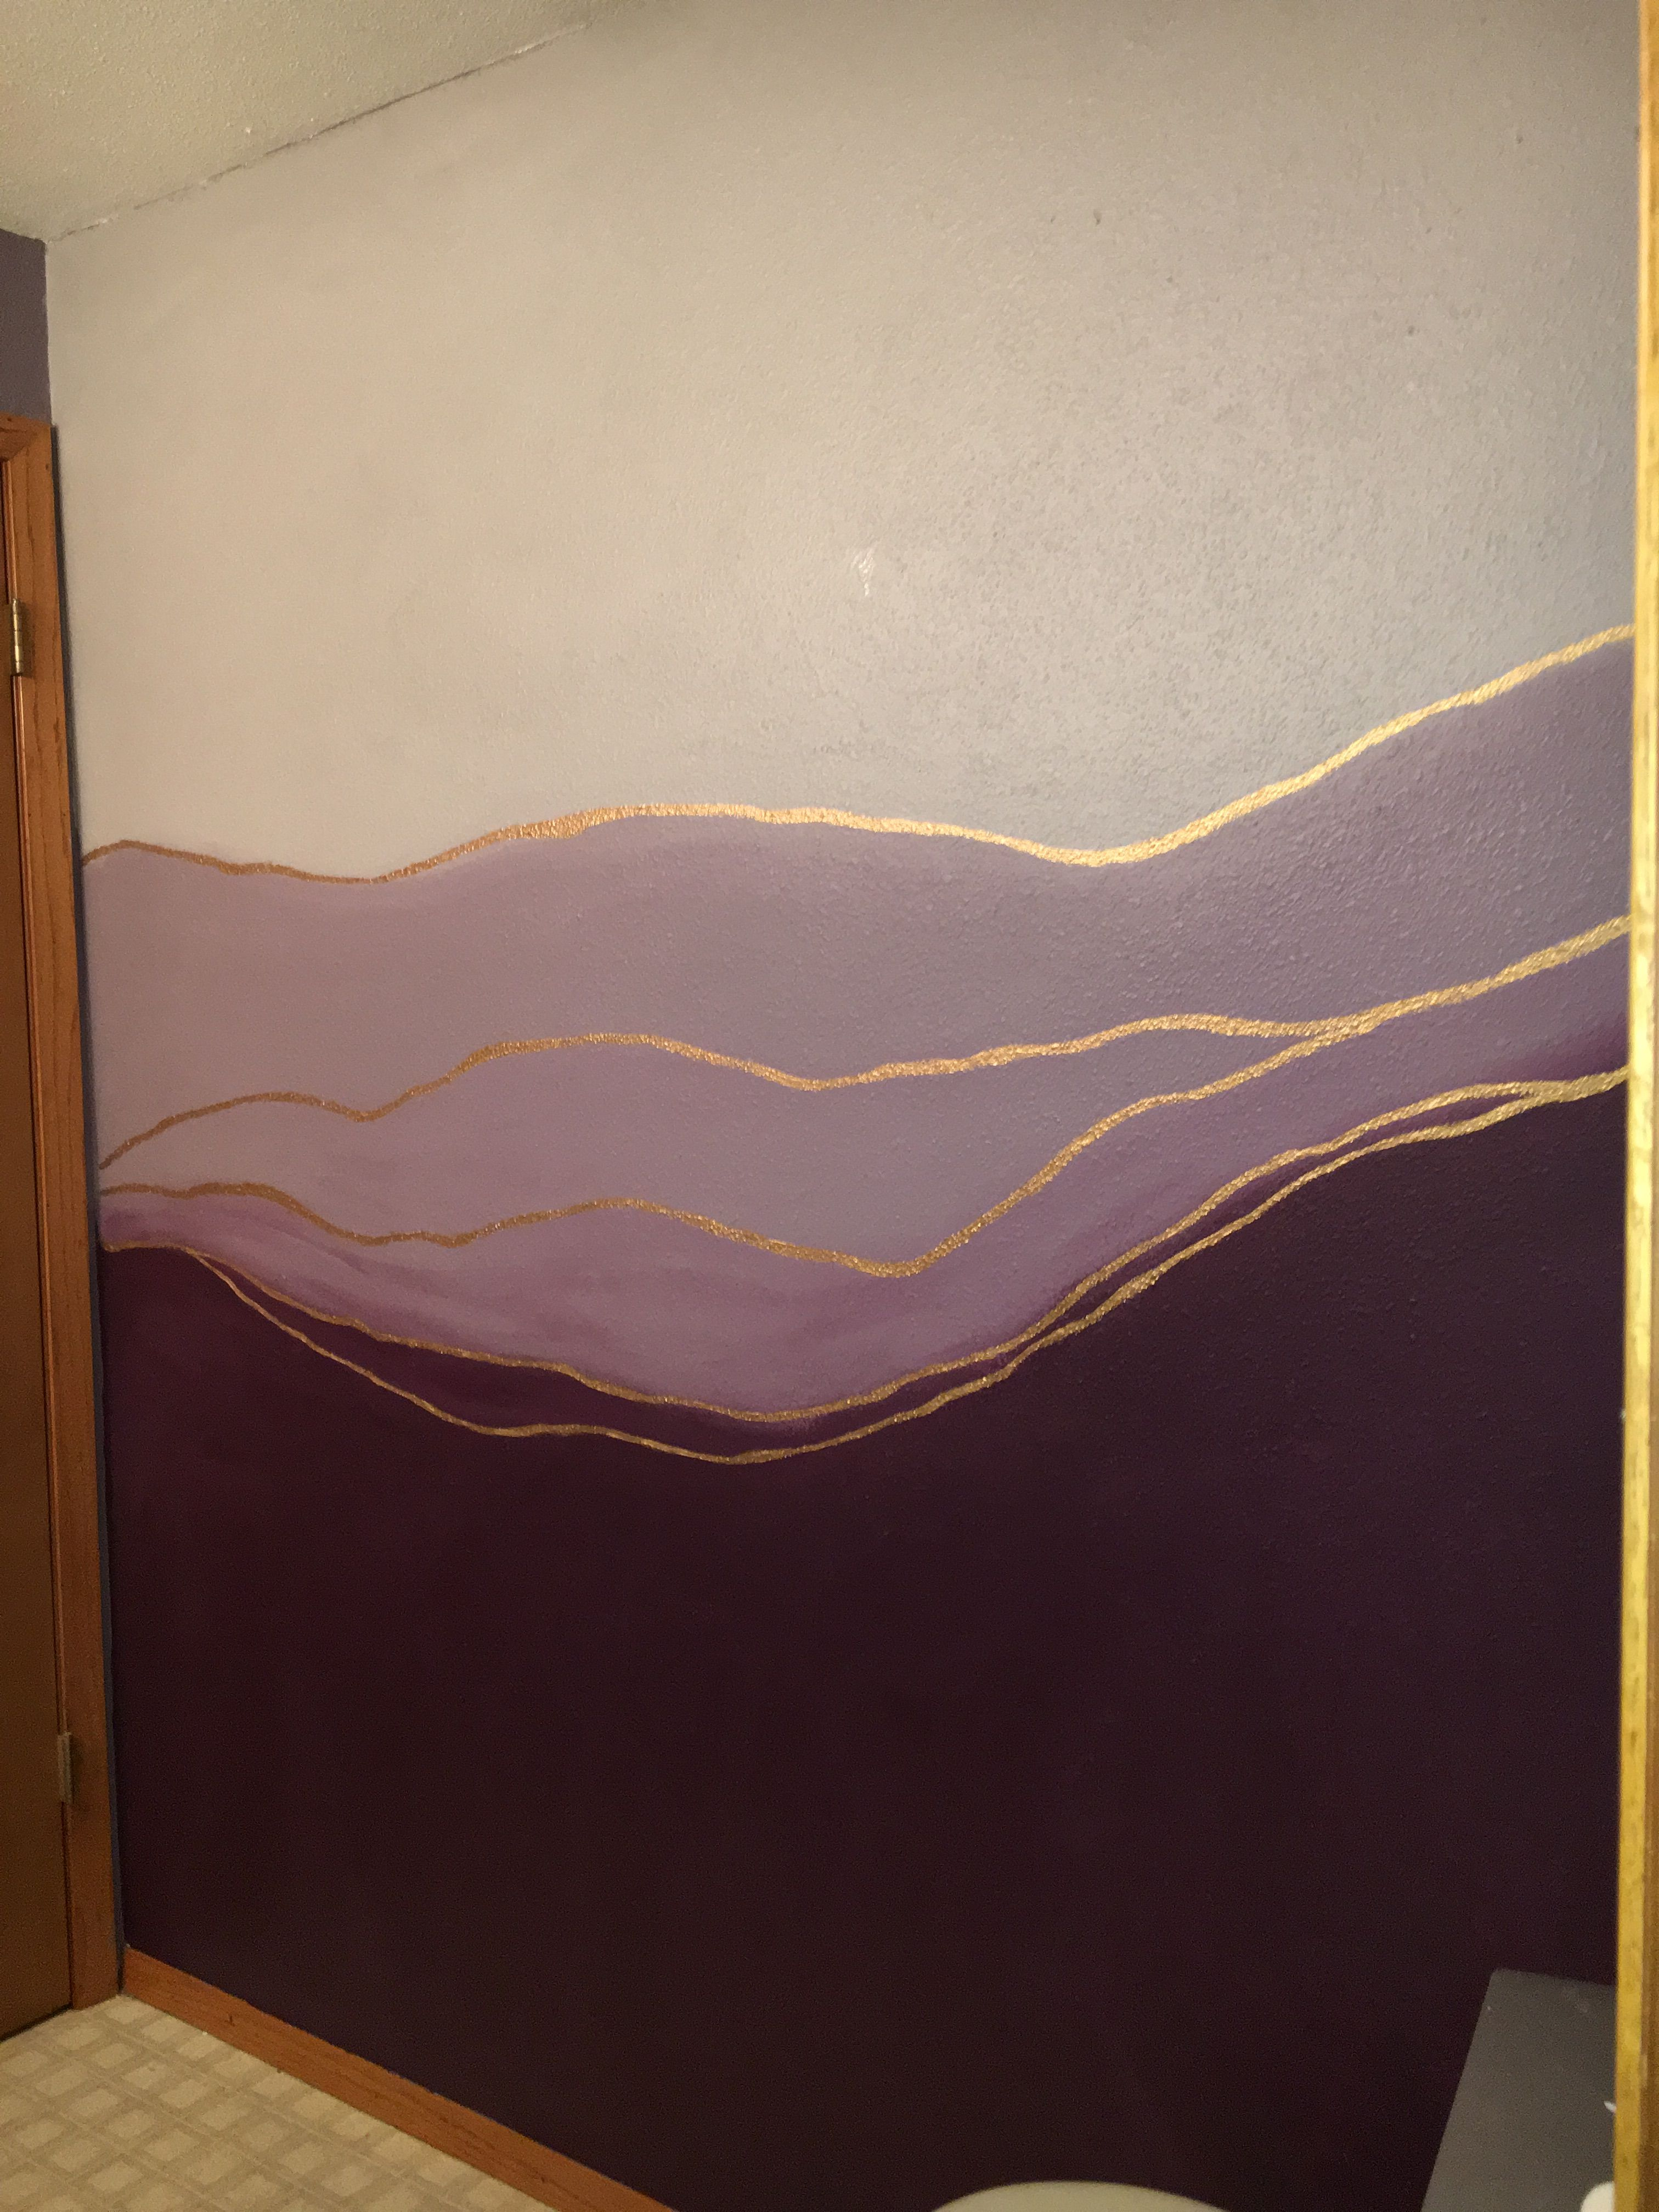 Want To Find Out How To Achieve This Diy Ombre Wall Come Into Kimps Ace Hardware Paint And Decorating Studio Ombr Ombre Wall Diy Ombre Wall Wall Murals Diy